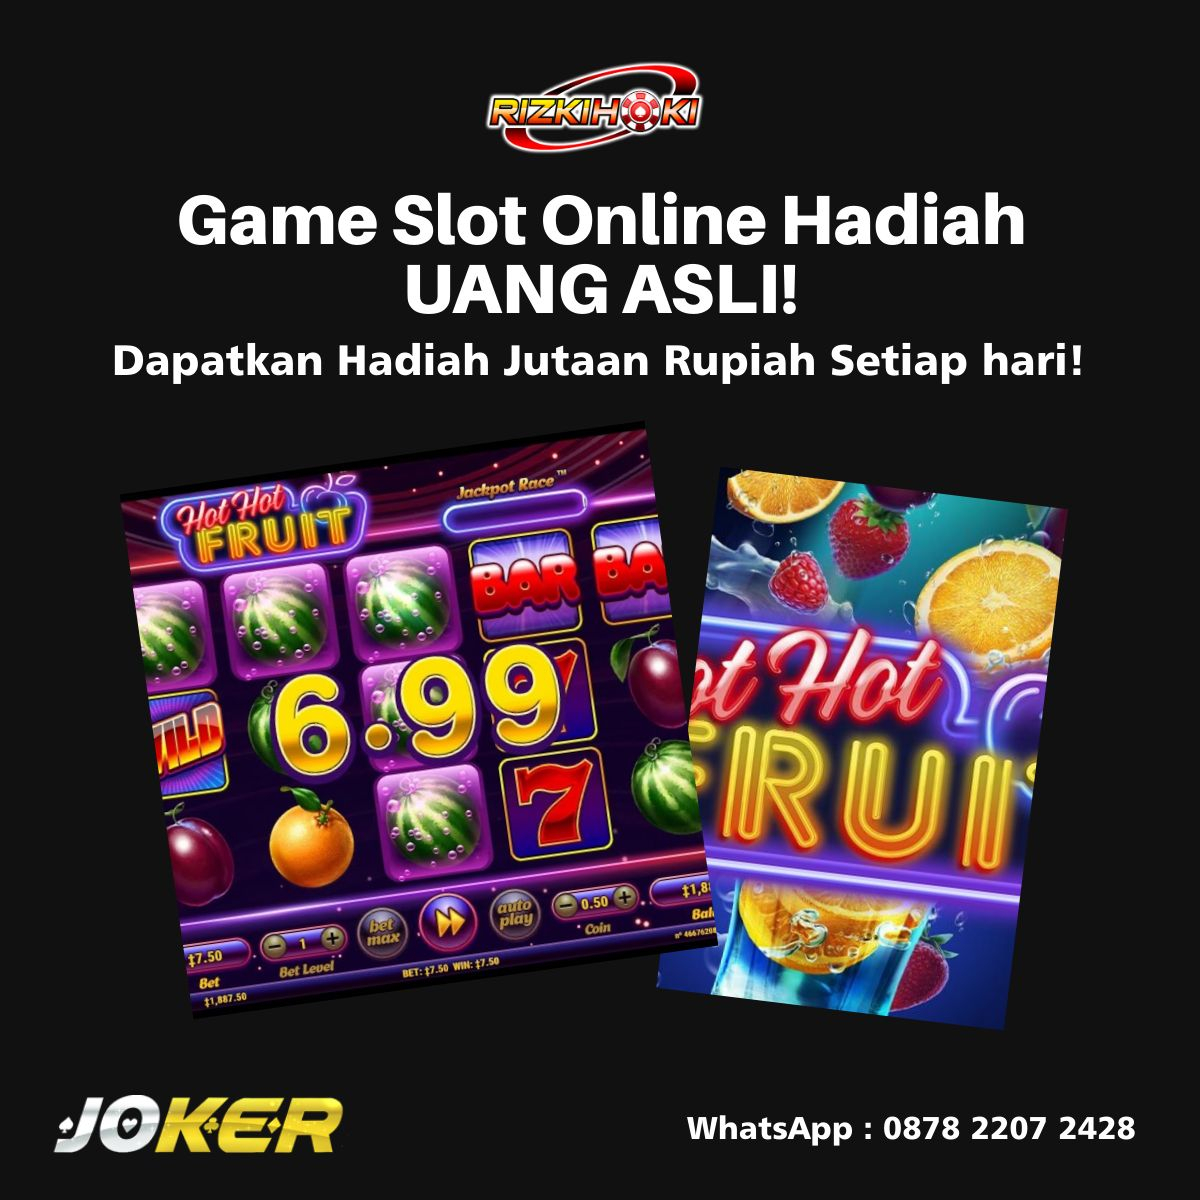 Download Joker123 Pc Di Kecamatan Batu Putih